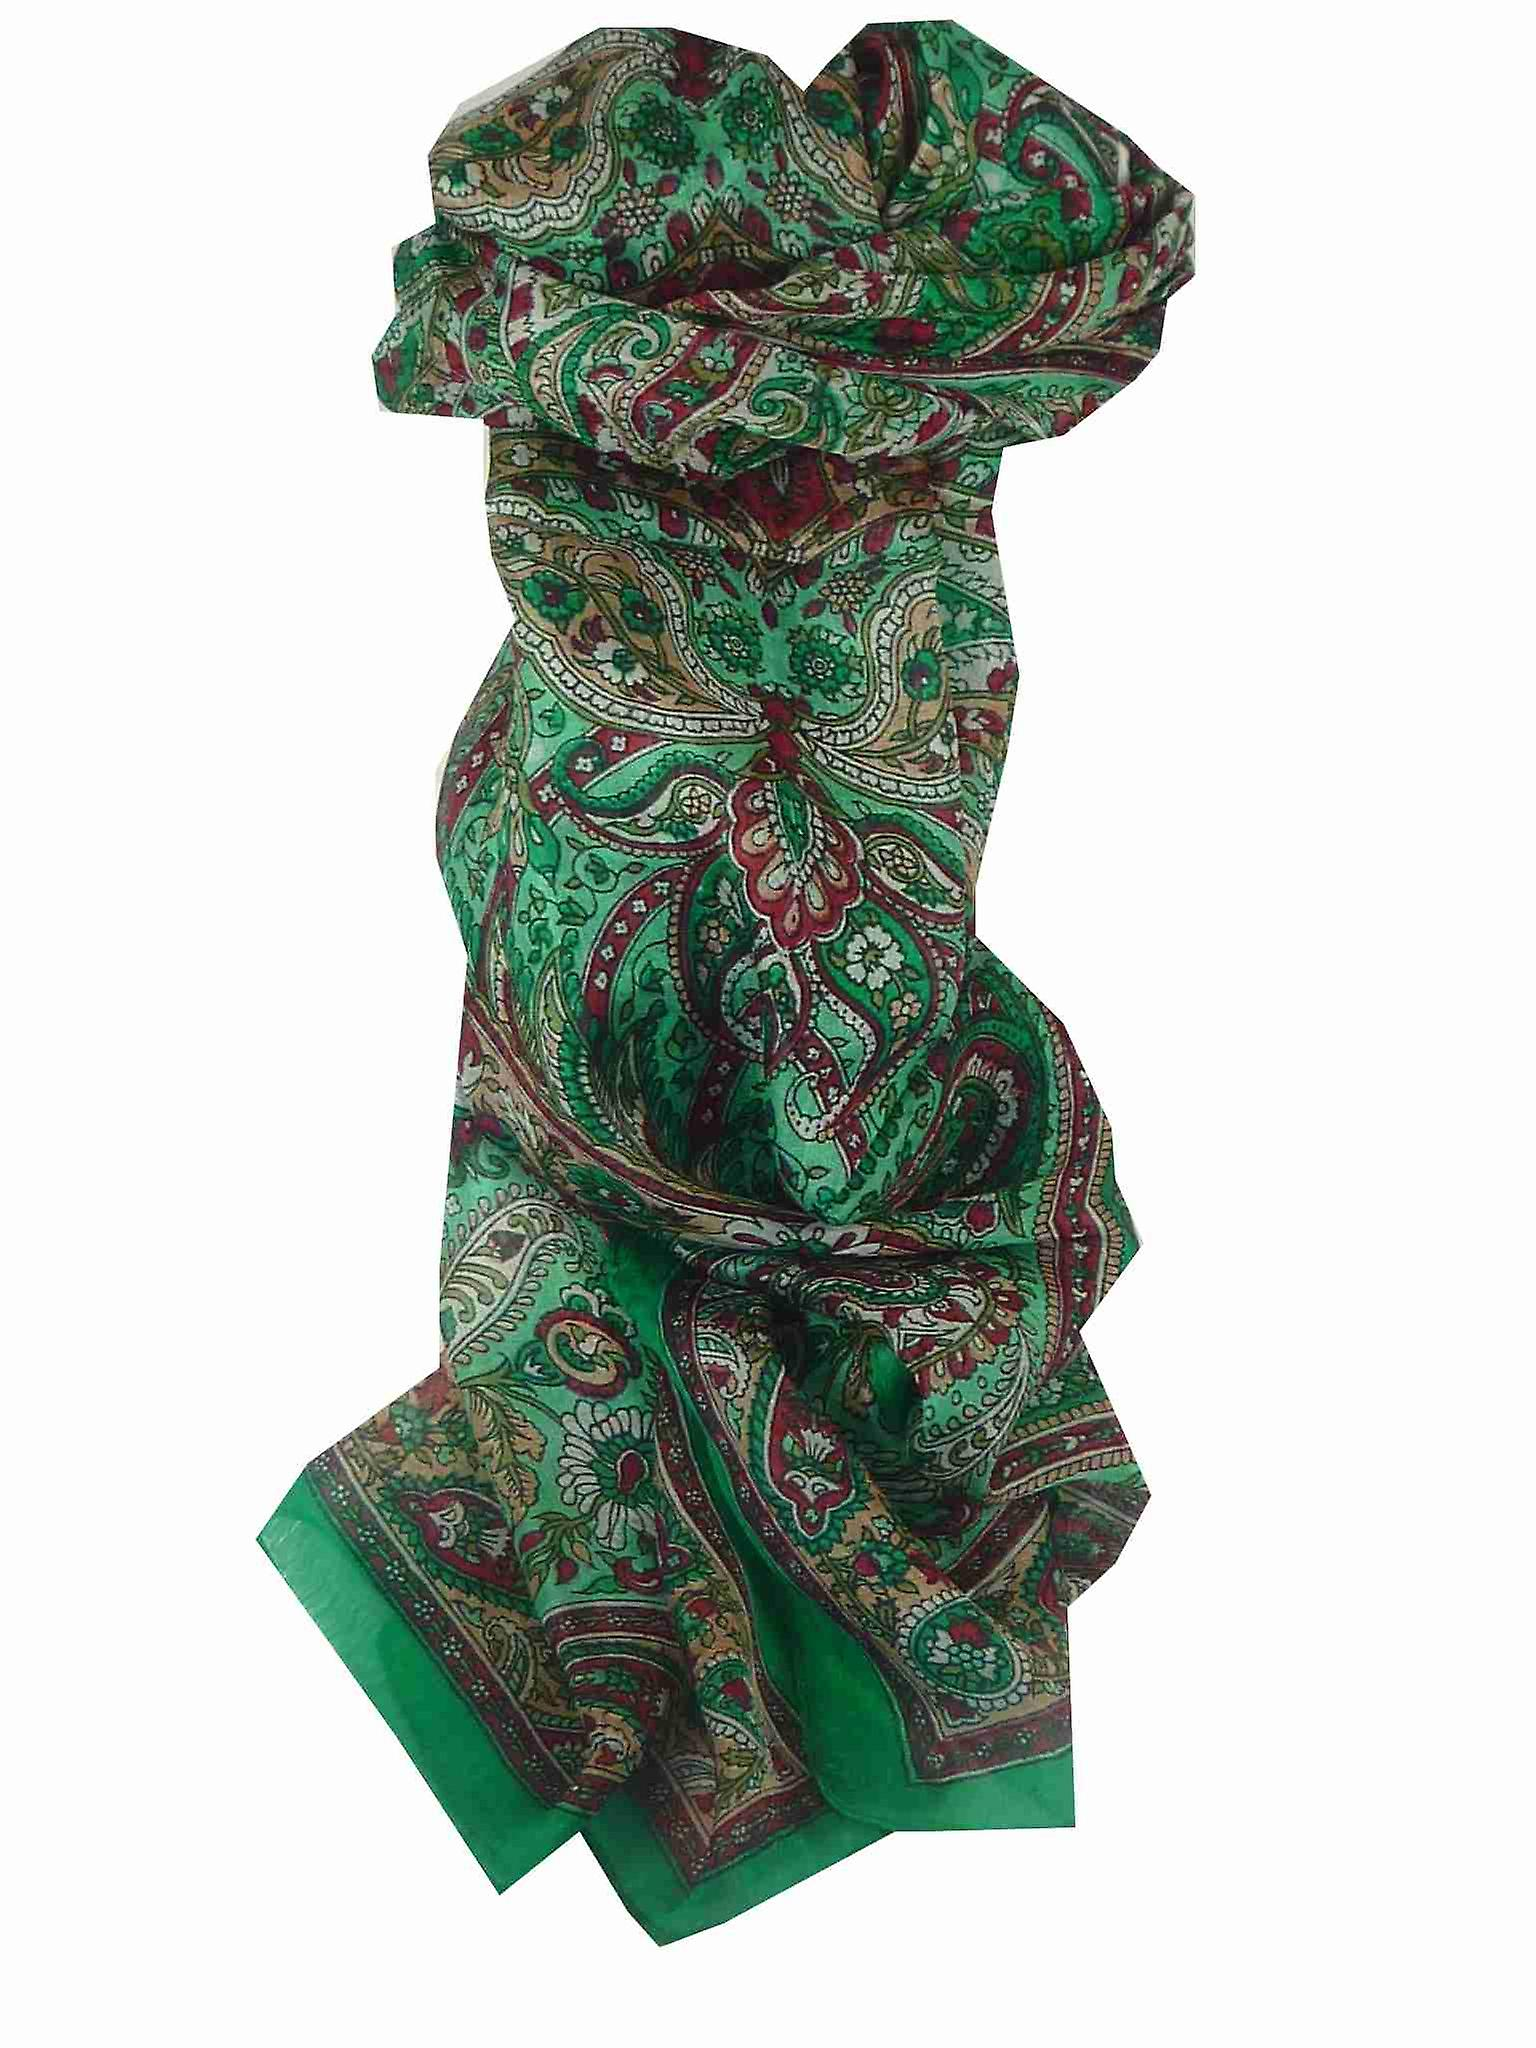 Mulberry Silk Traditional Long Scarf Sara Green by Pashmina & Silk